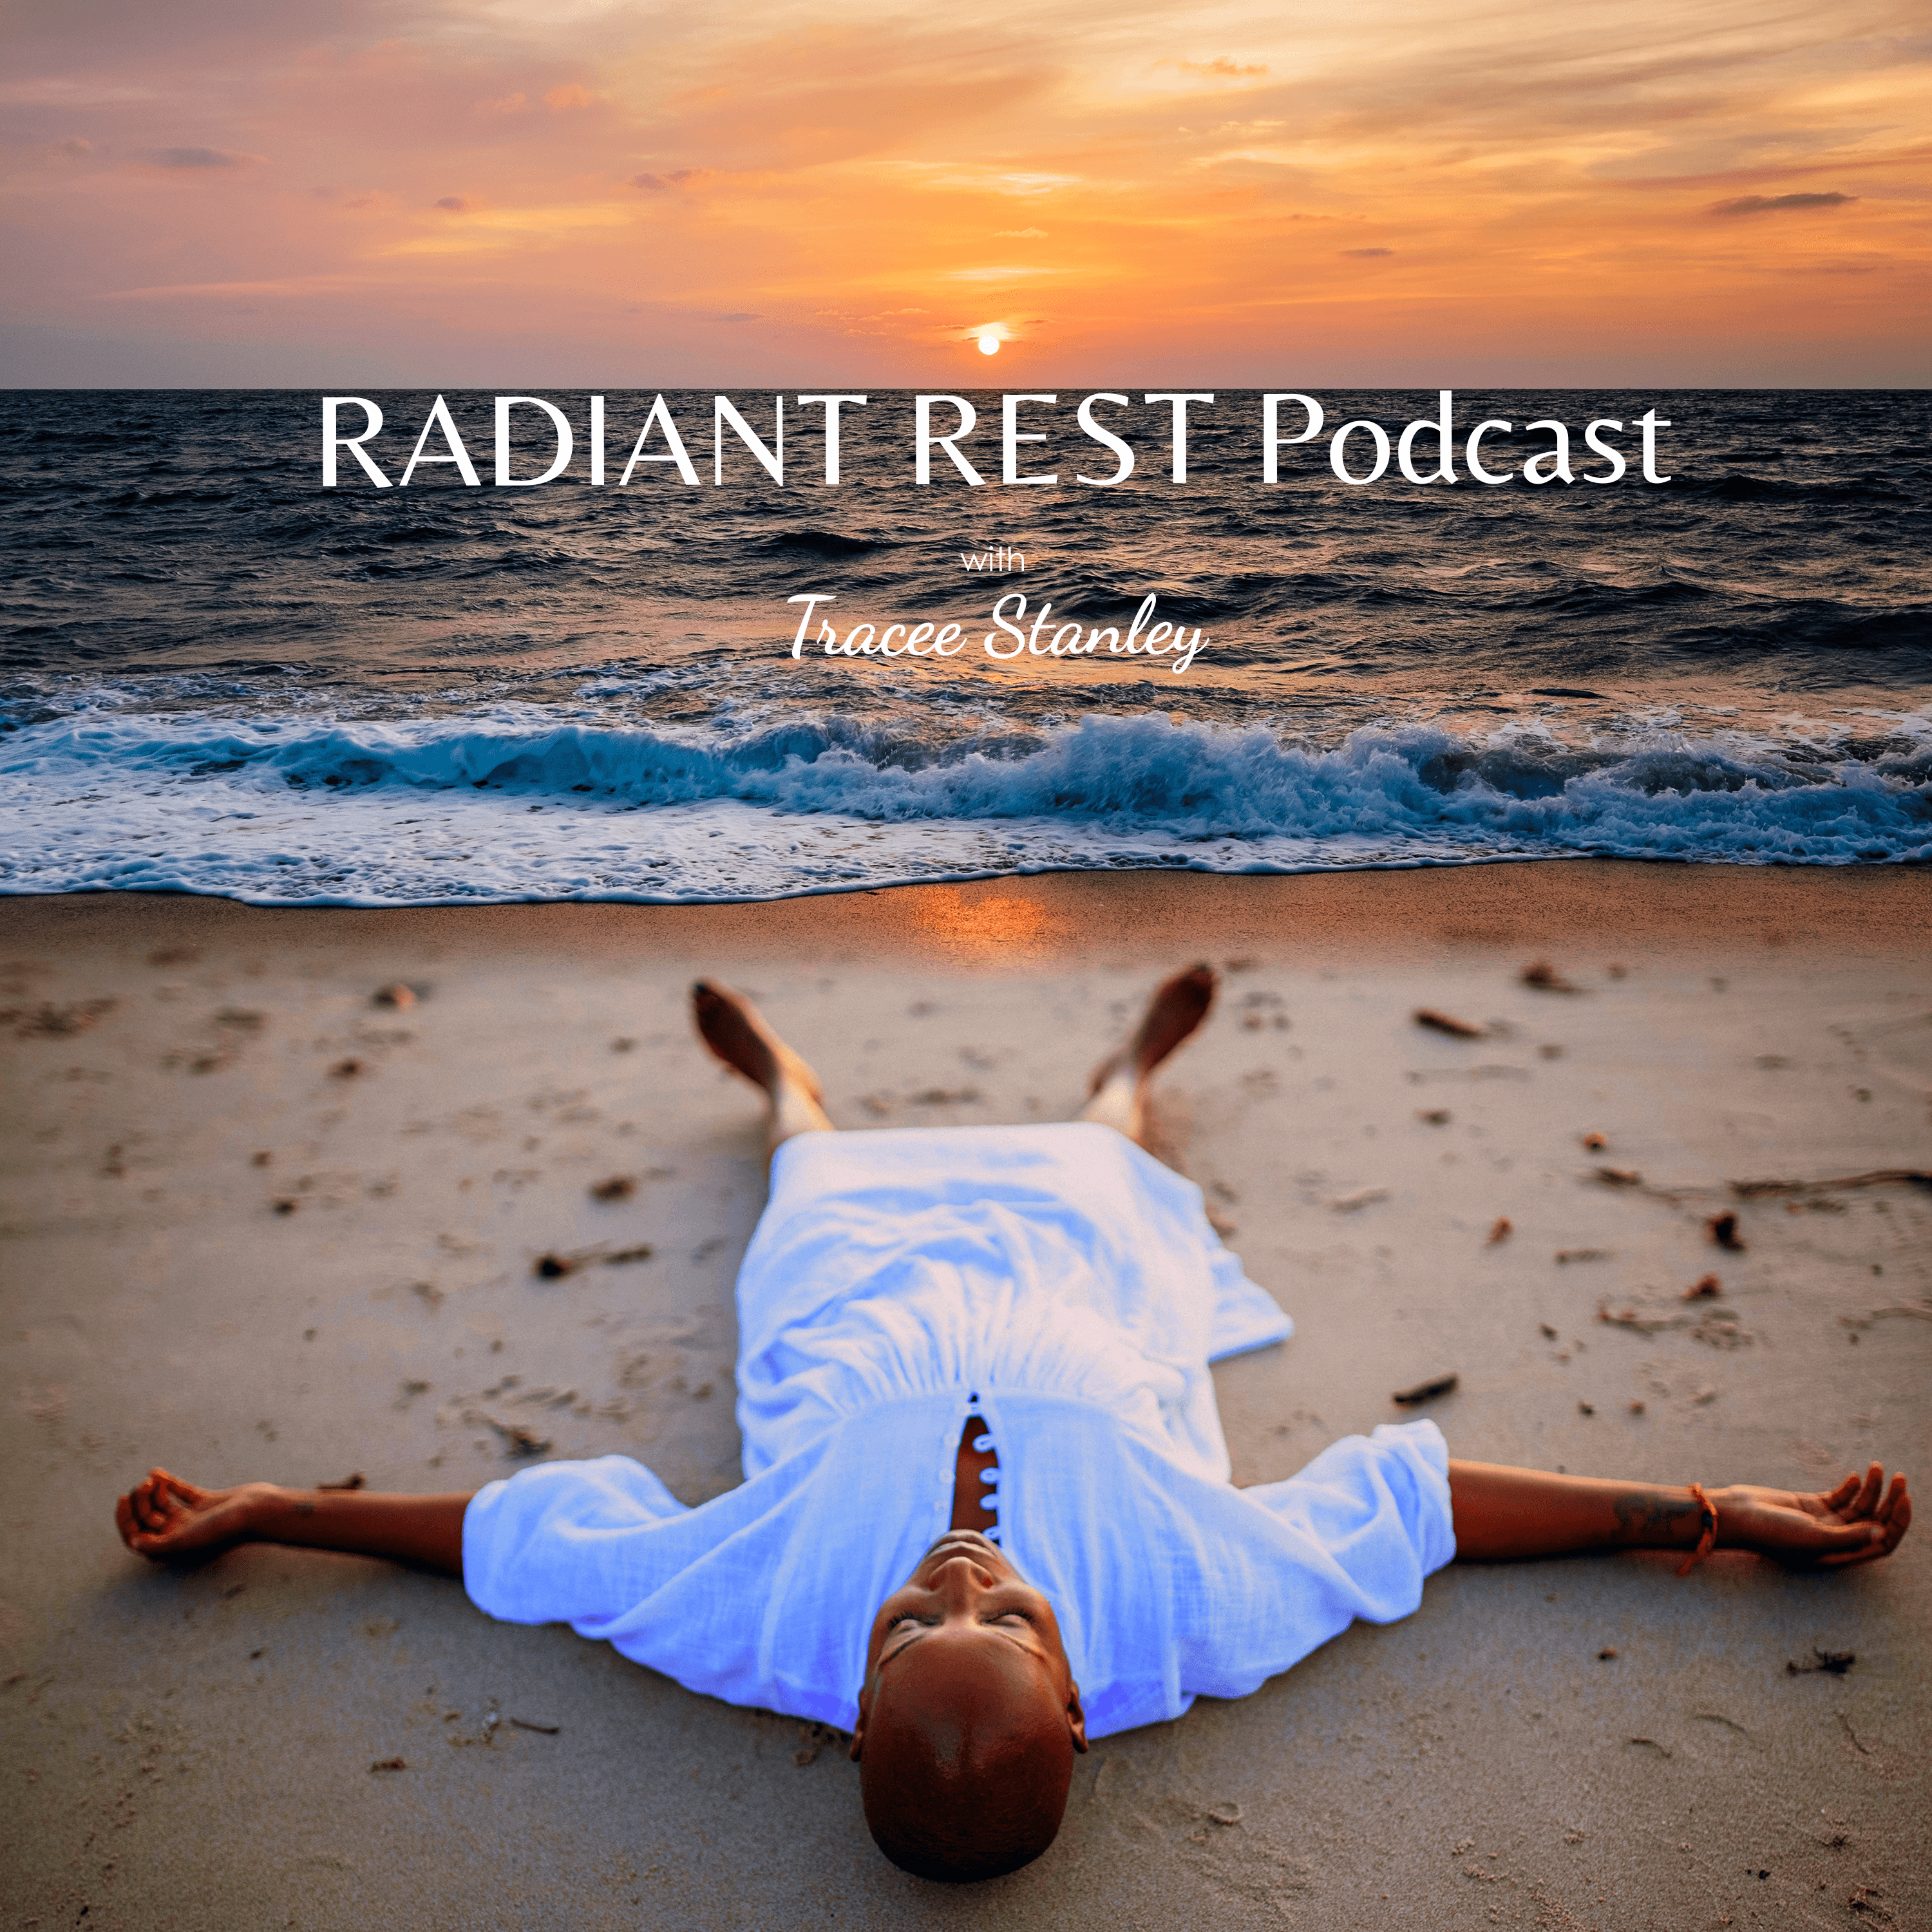 Radiant Rest  Podcast with Tracee Stanley show art